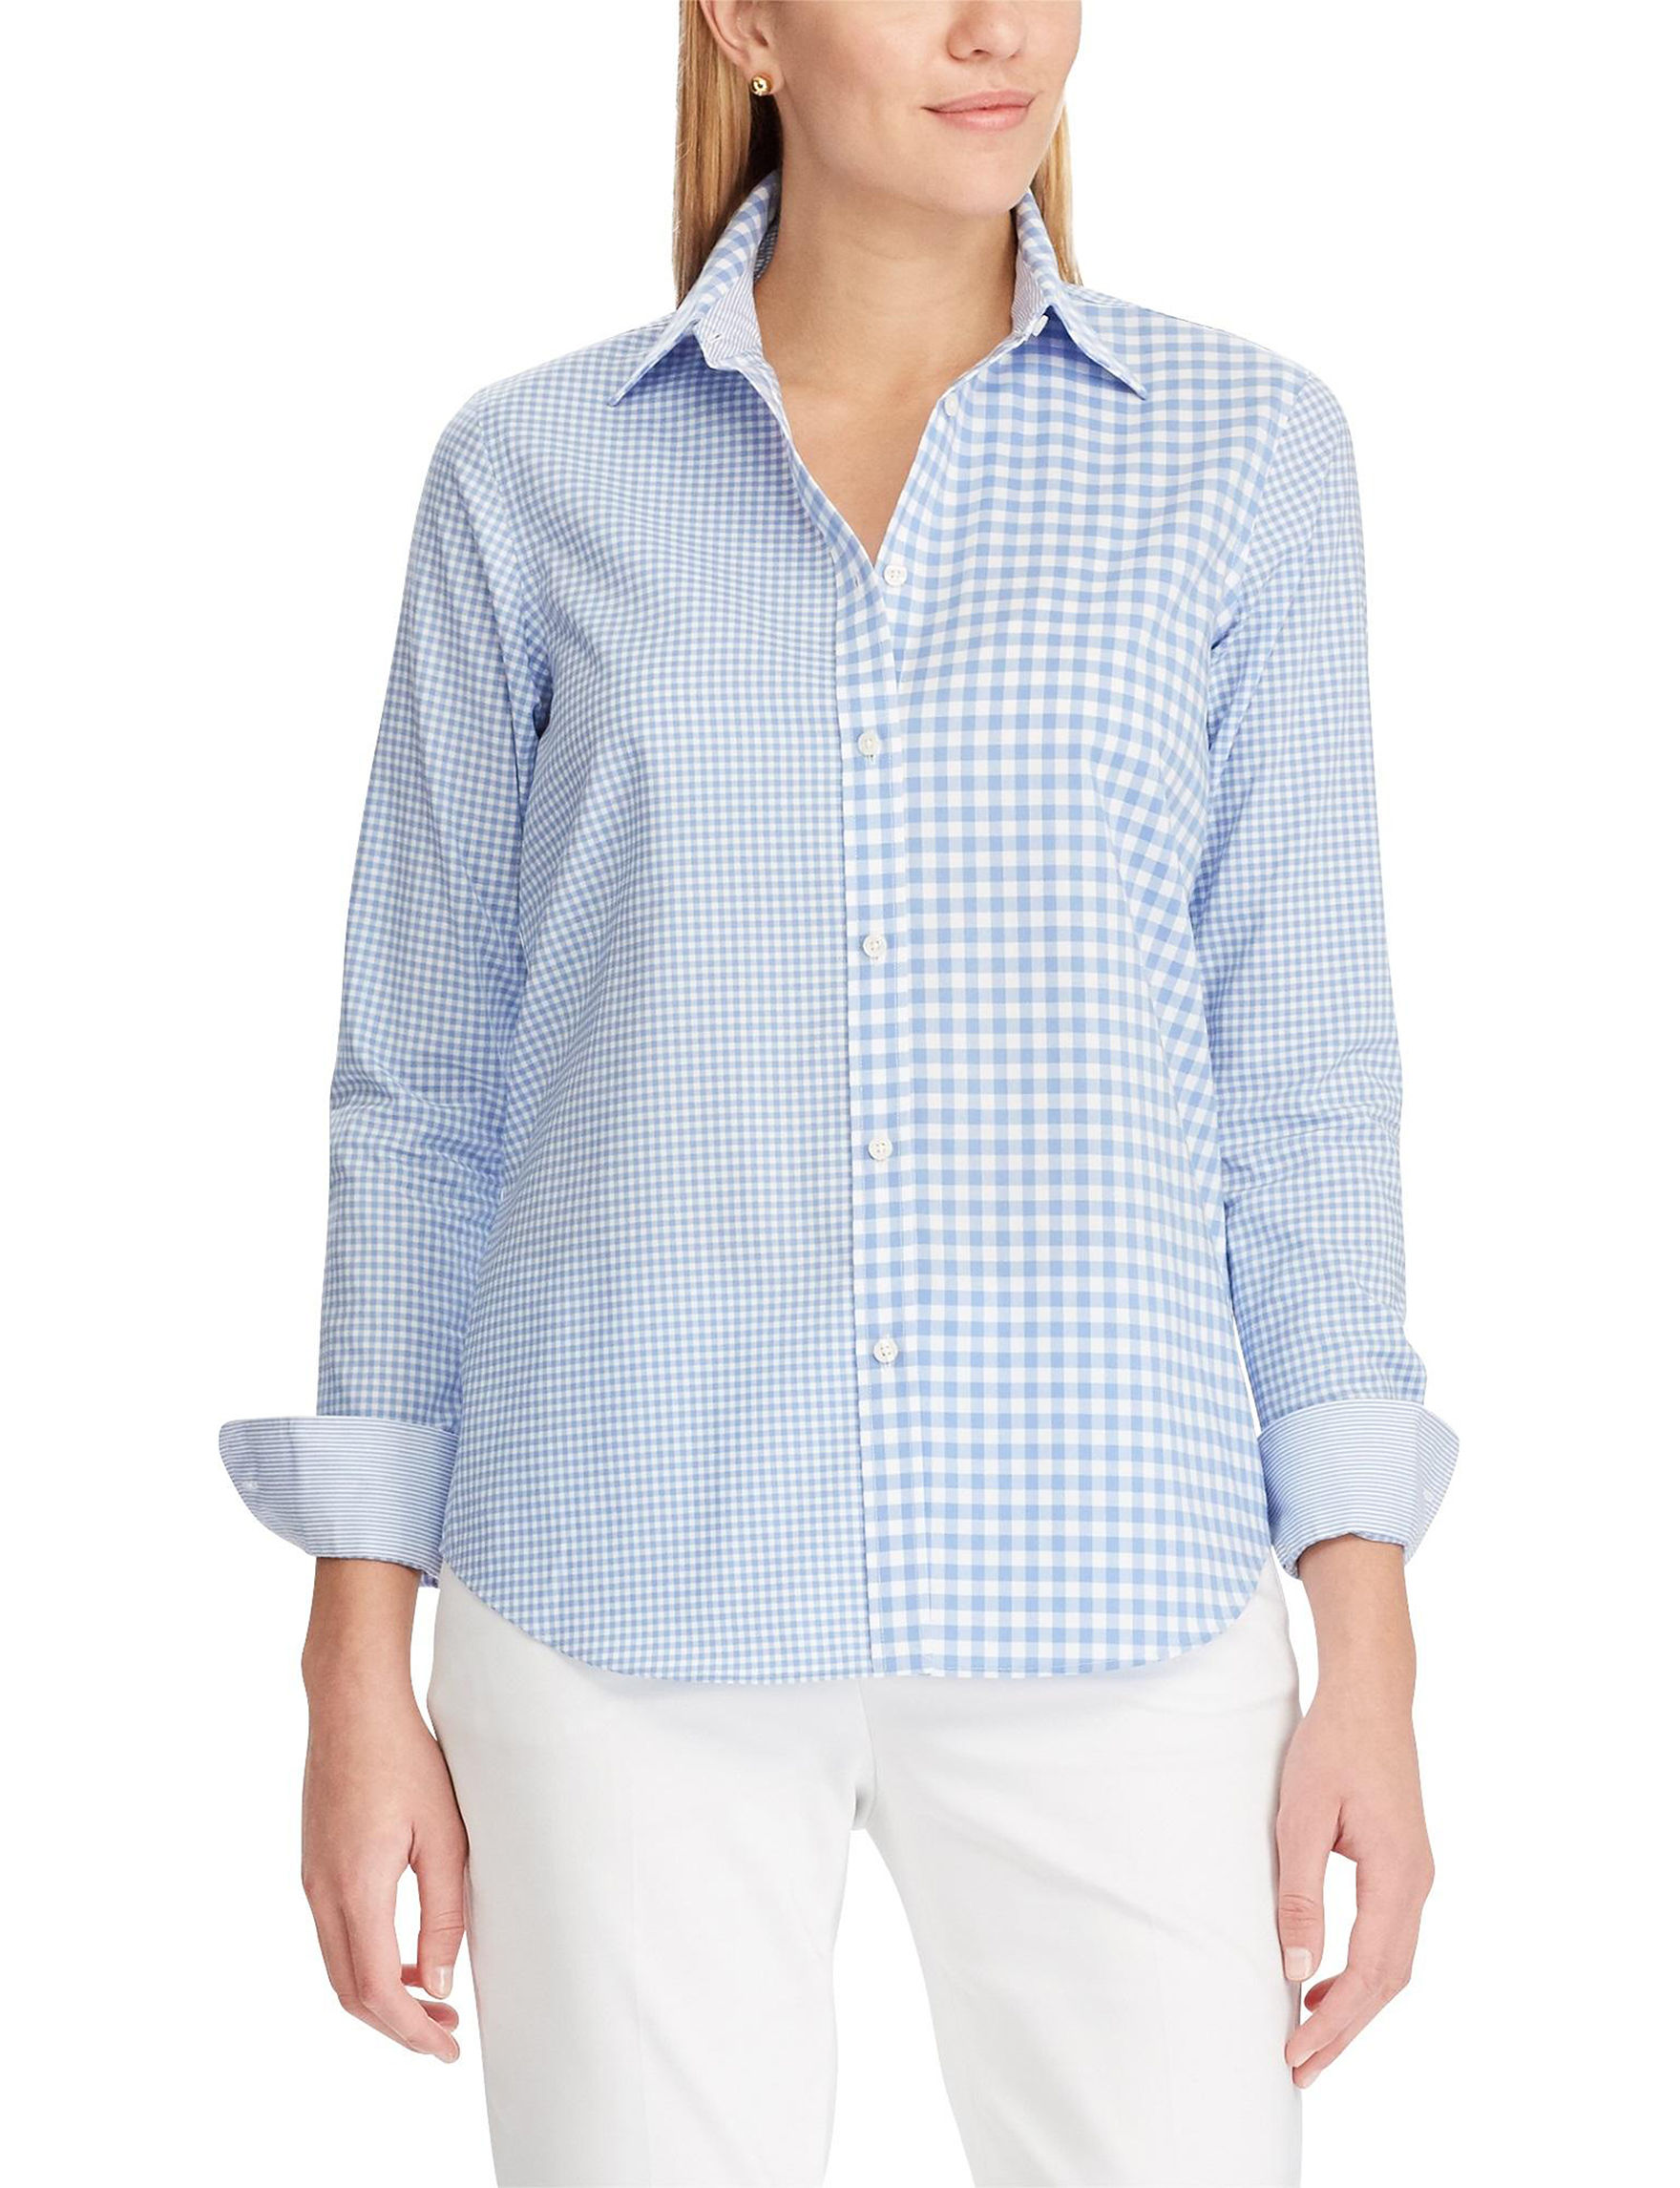 Chaps Blue Gingham Shirts & Blouses